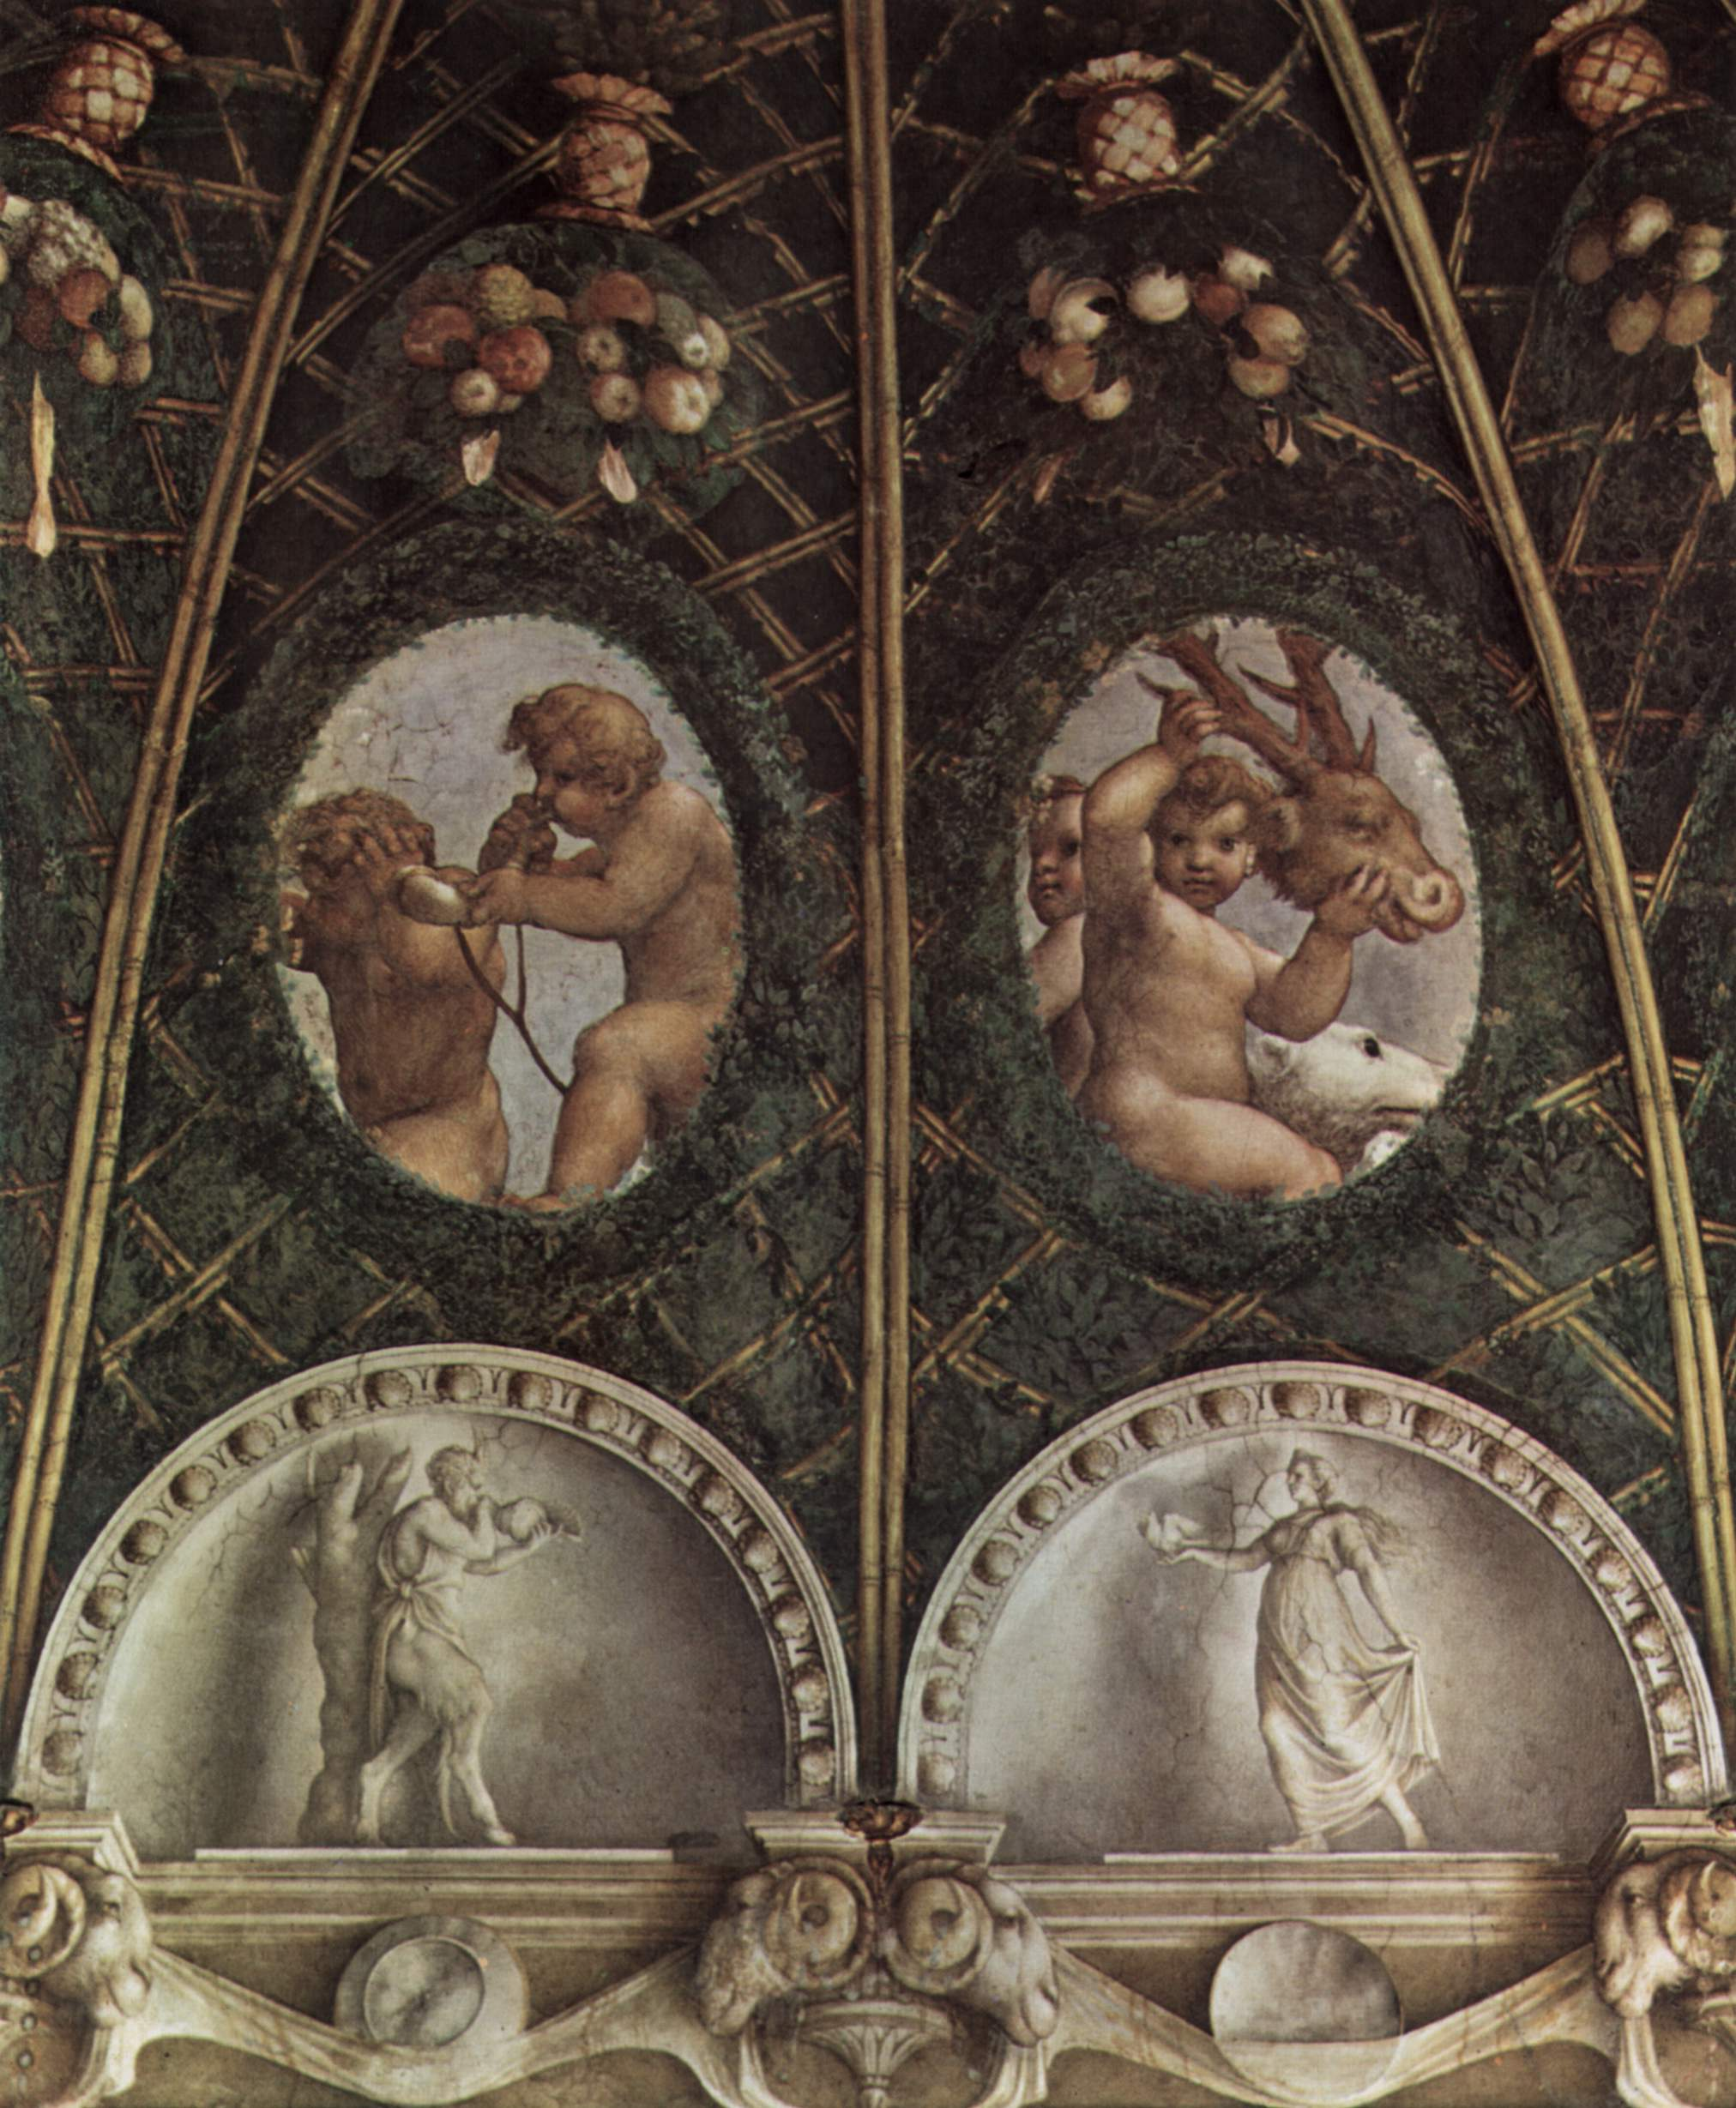 http://upload.wikimedia.org/wikipedia/commons/b/b9/Correggio_009.jpg